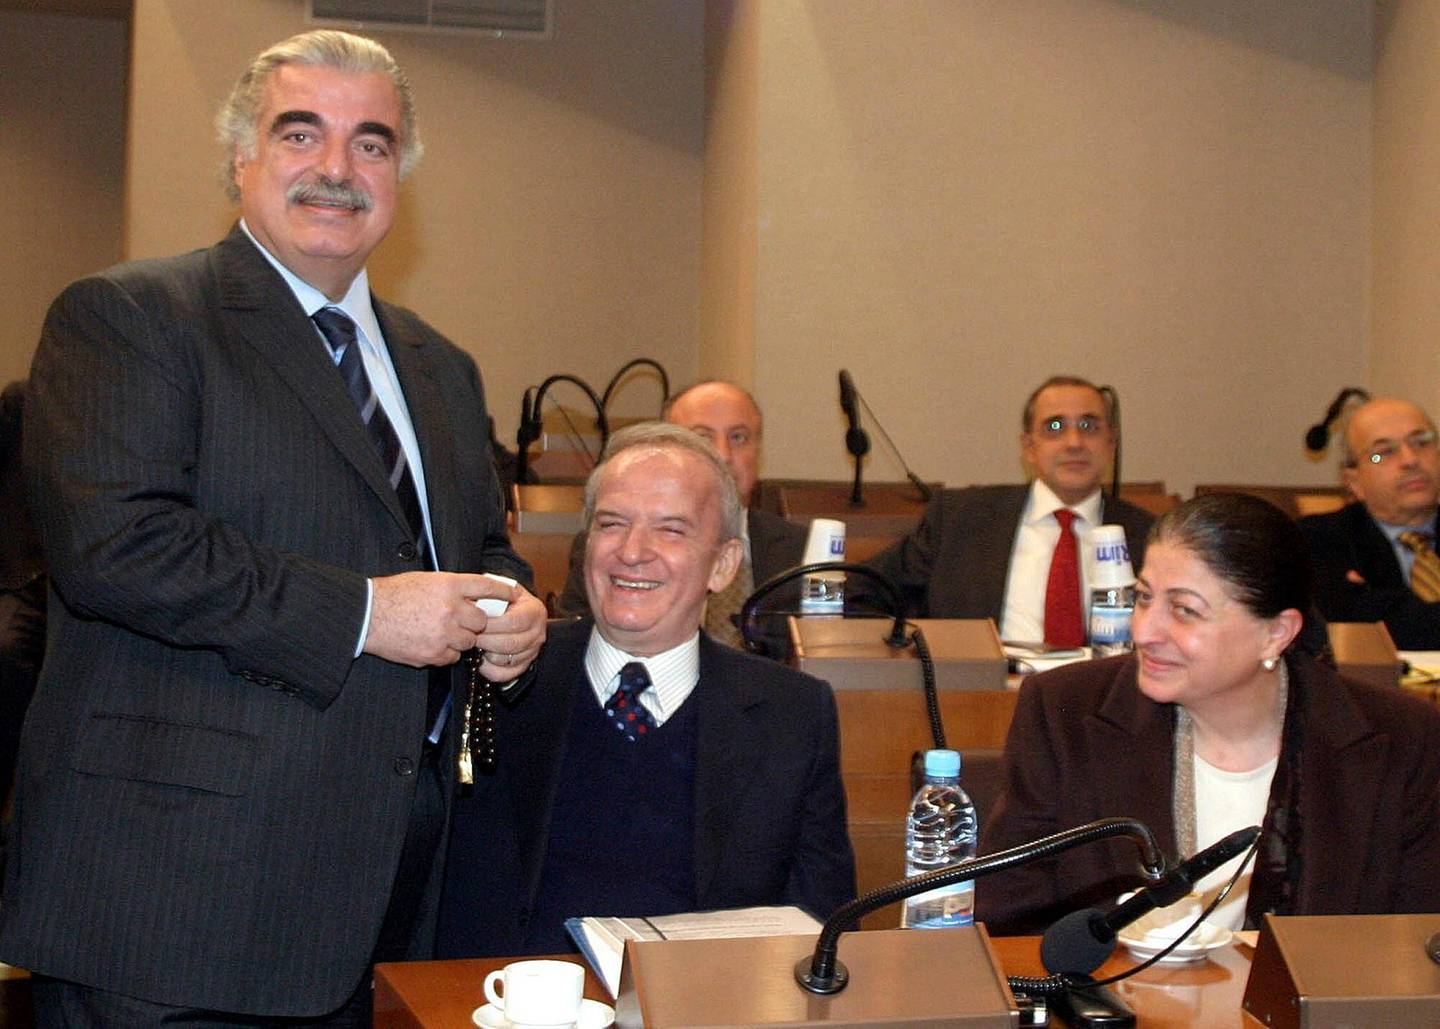 FILE - In this Feb. 14, 2005 file photo former Lebanese Prime Minister Rafik Hariri, left, Parliament member Marwan Hamadeh and Bahiyah Hariri, sister of President Hariri, are pictured during a meeting at the Parliament in Beirut. More than 15 years after the truck bomb assassination of former Lebanese Prime Minister Rafik Hariri in Beirut, a U.N.-backed tribunal in the Netherlands is announcing verdicts this in the trial of four members of the militant group Hezbollah allegedly involved in the killing, which deeply divided the tiny country. (AP Photo, File)